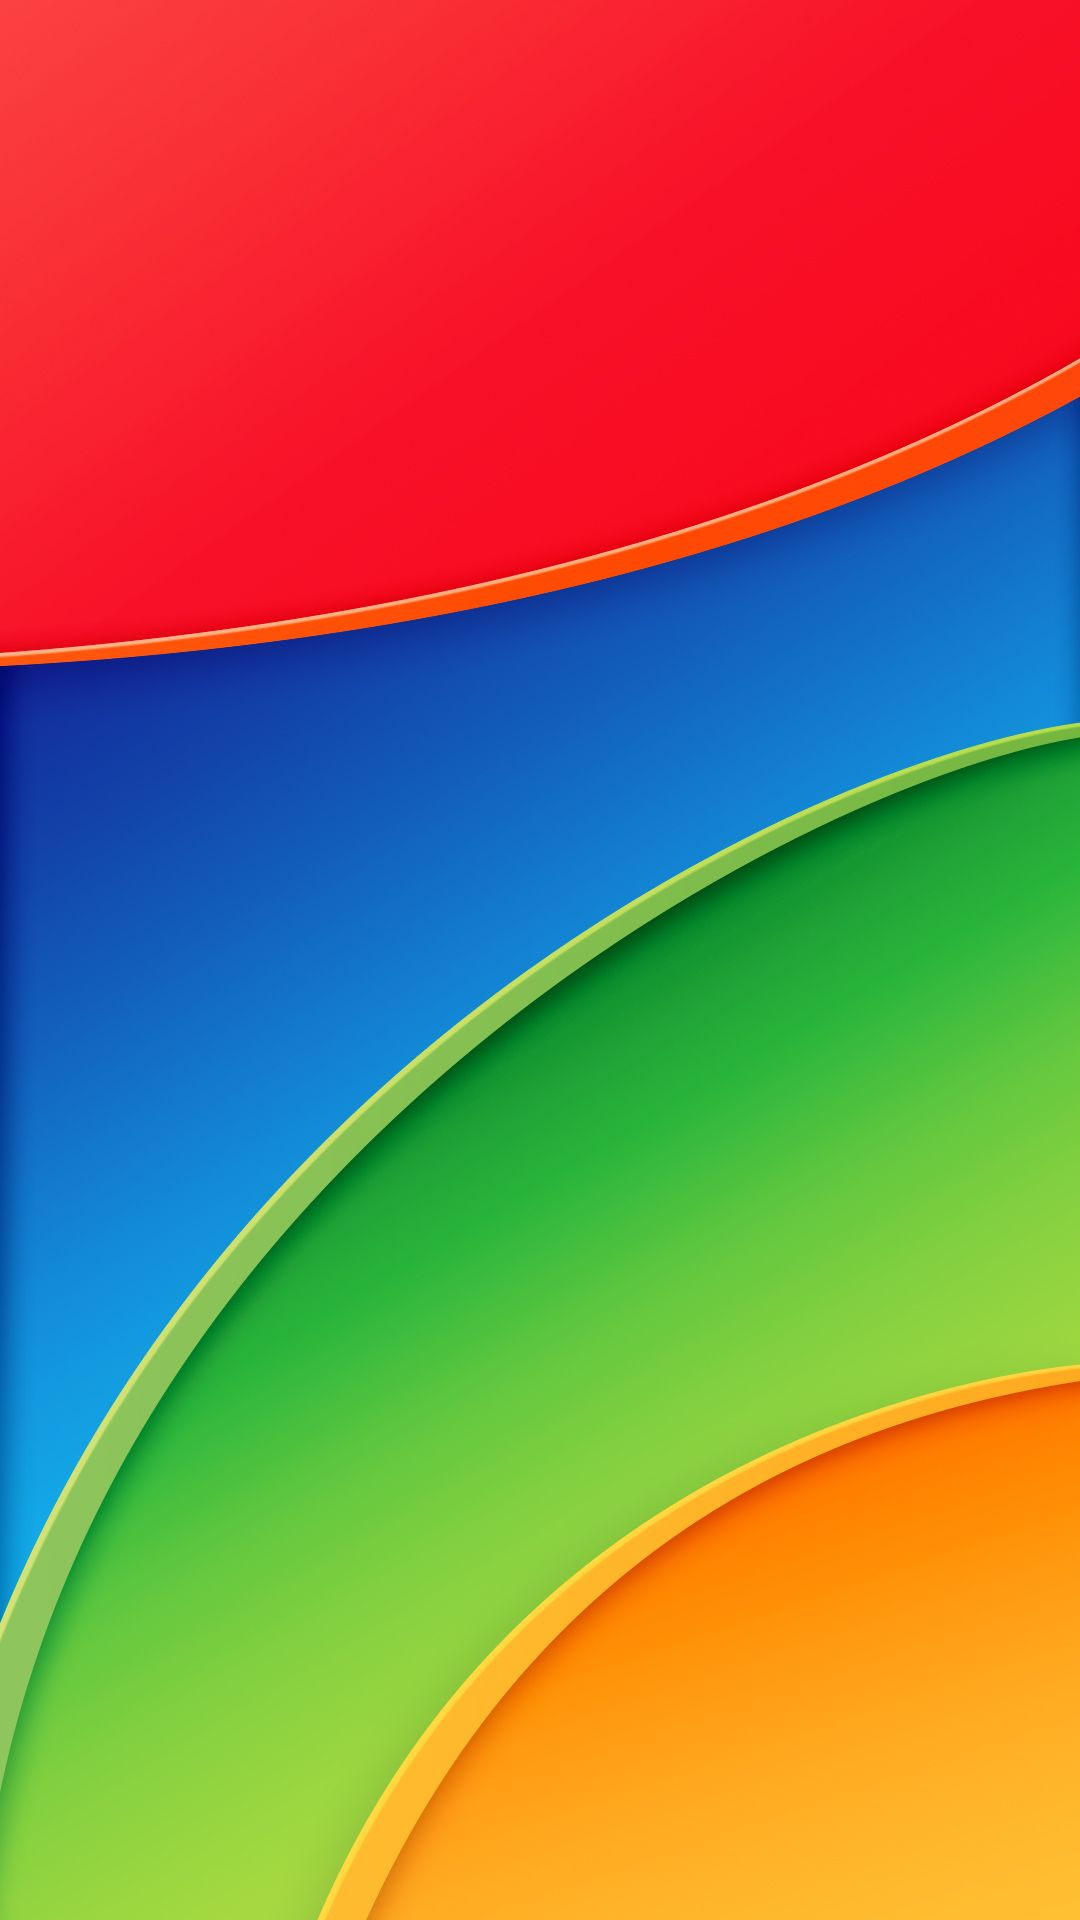 Lenovo Wallpapers - Lenovo Hd Wallpaper For Mobile , HD Wallpaper & Backgrounds